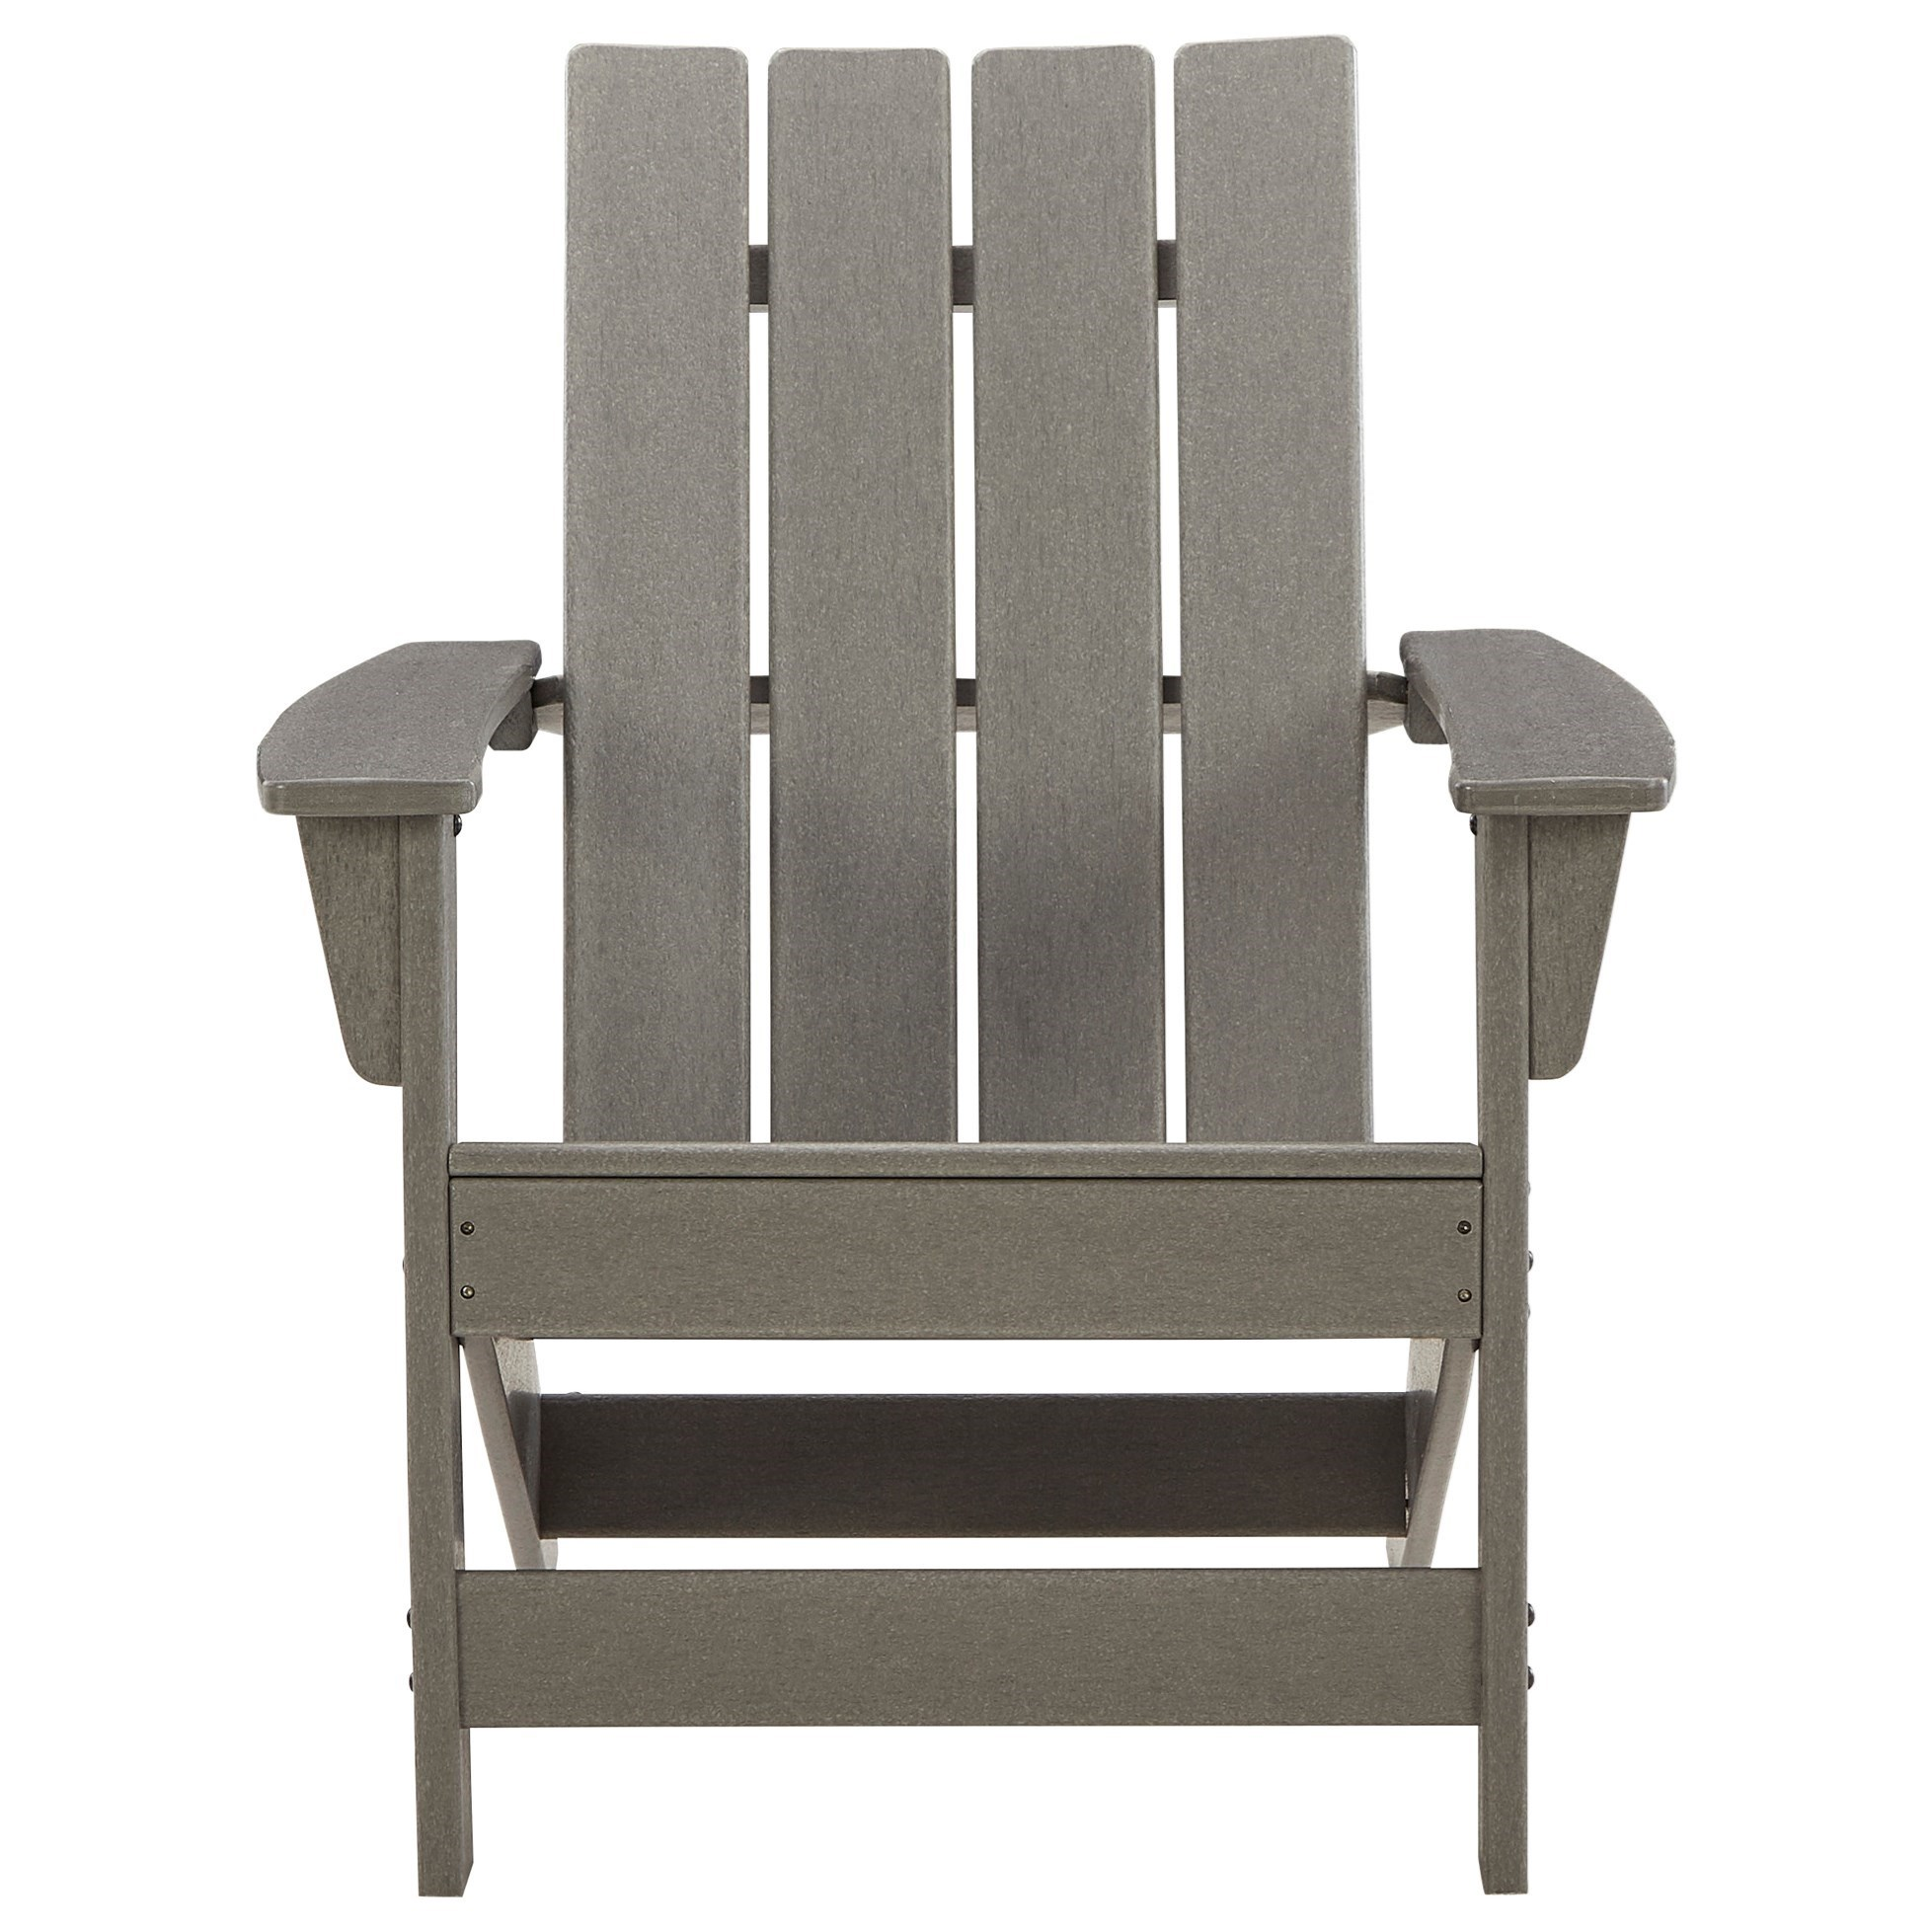 Visola Adirondack Chair by Signature Design by Ashley at Northeast Factory Direct